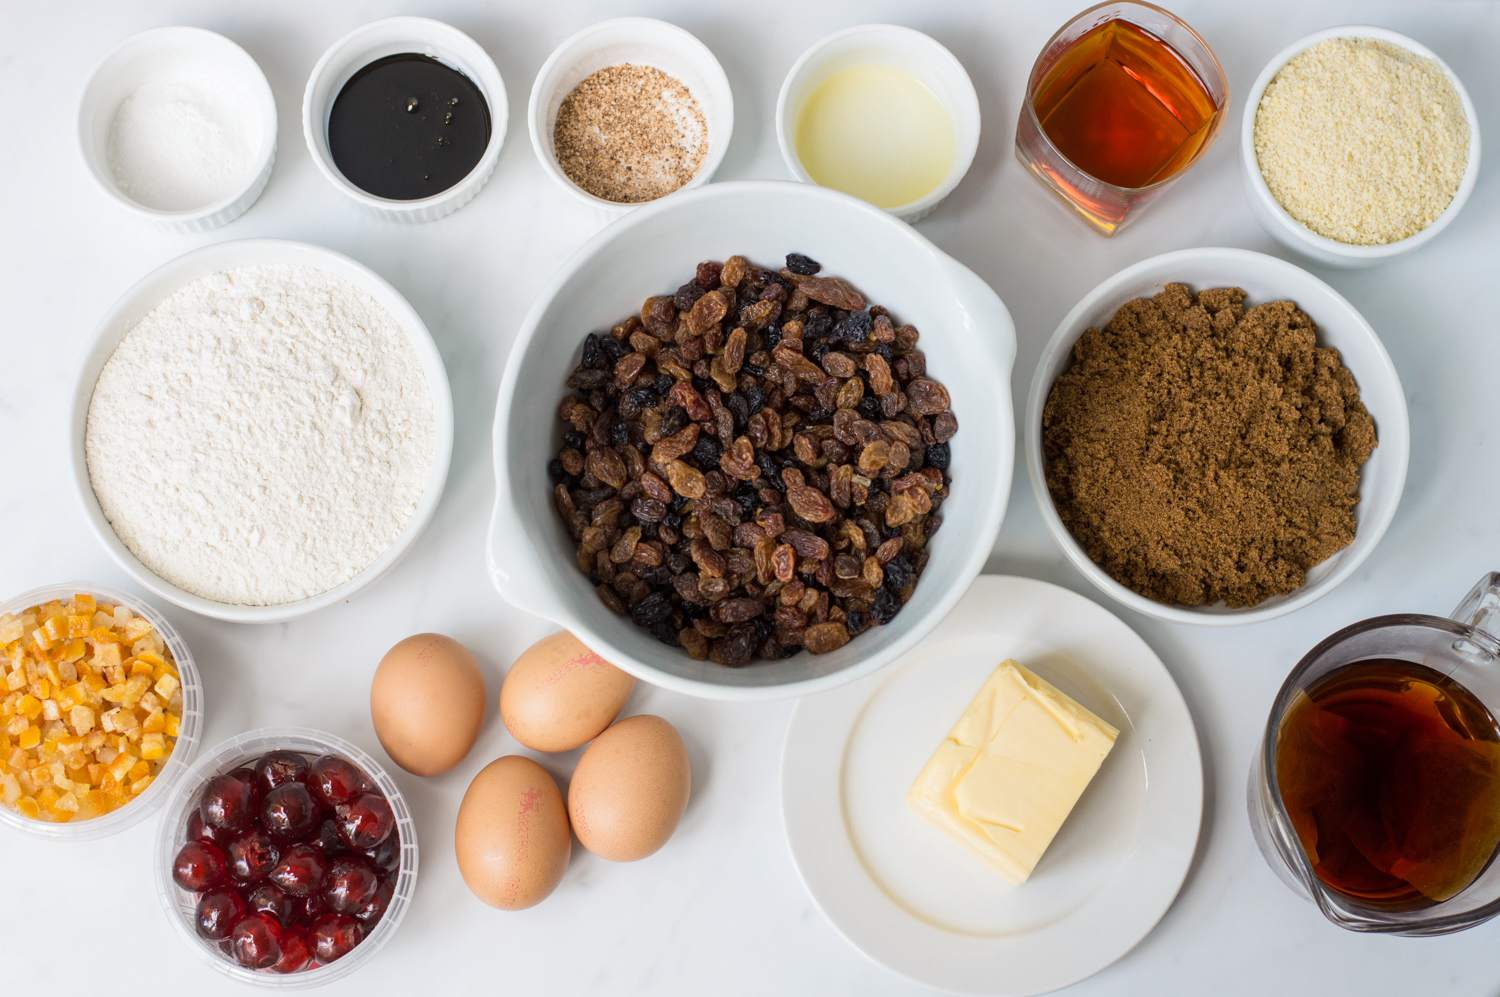 All of the ingredients to make a traditional British fruitcake